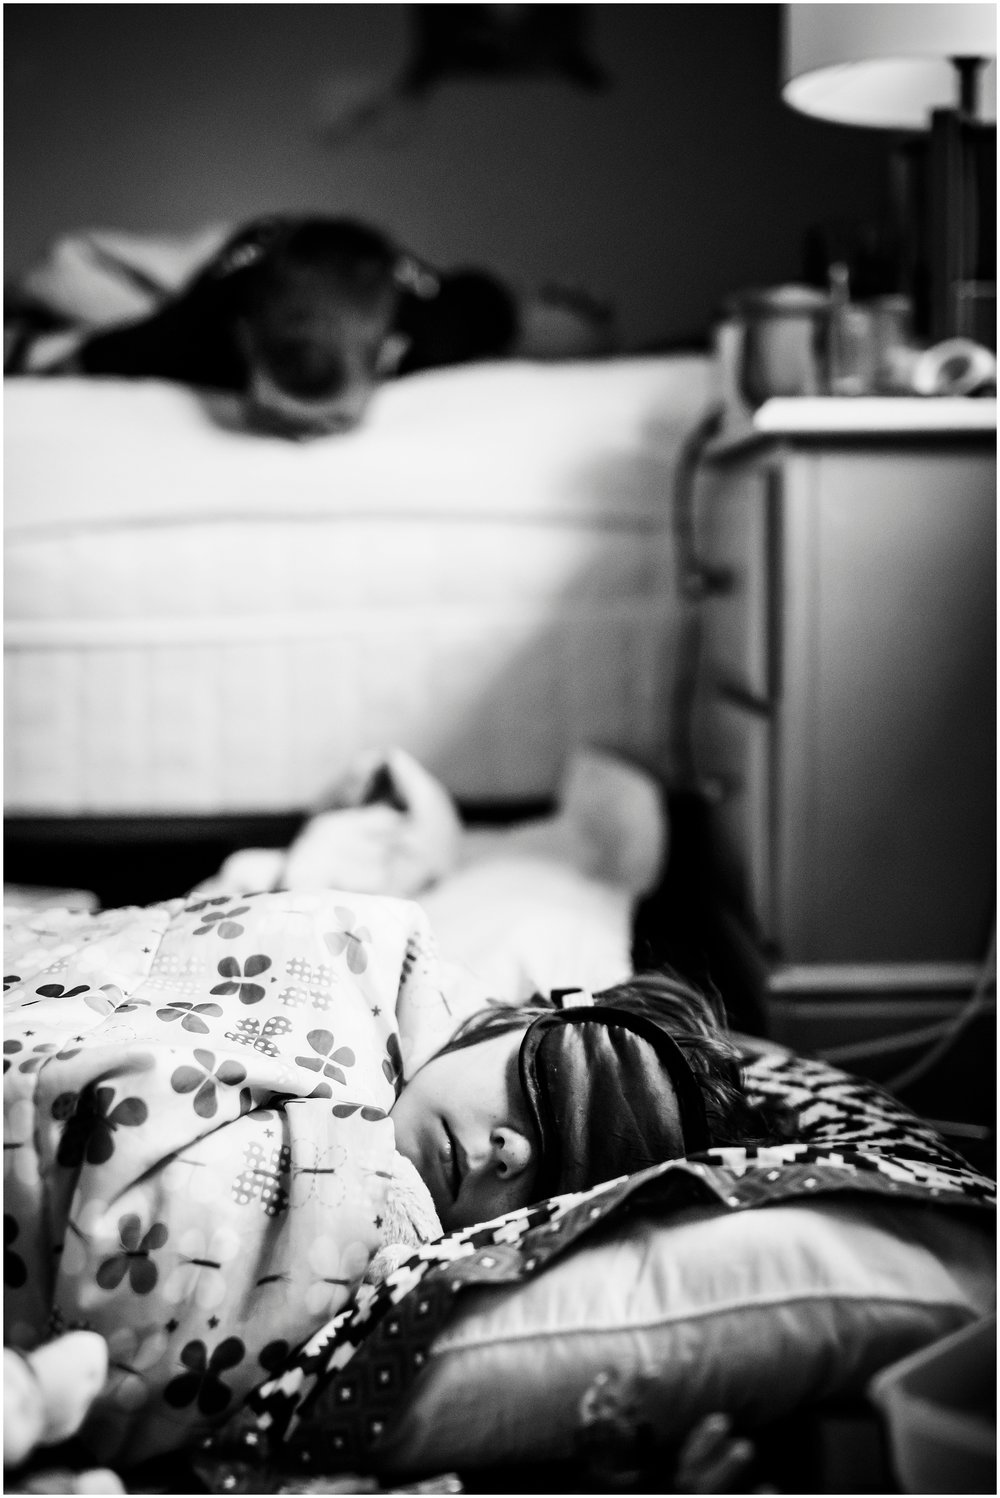 A sister sleeps with her sleeping mask on while her brother waits for her to wake up from their sleepover in Denver, CO. | Kristiina Craven Family Photography